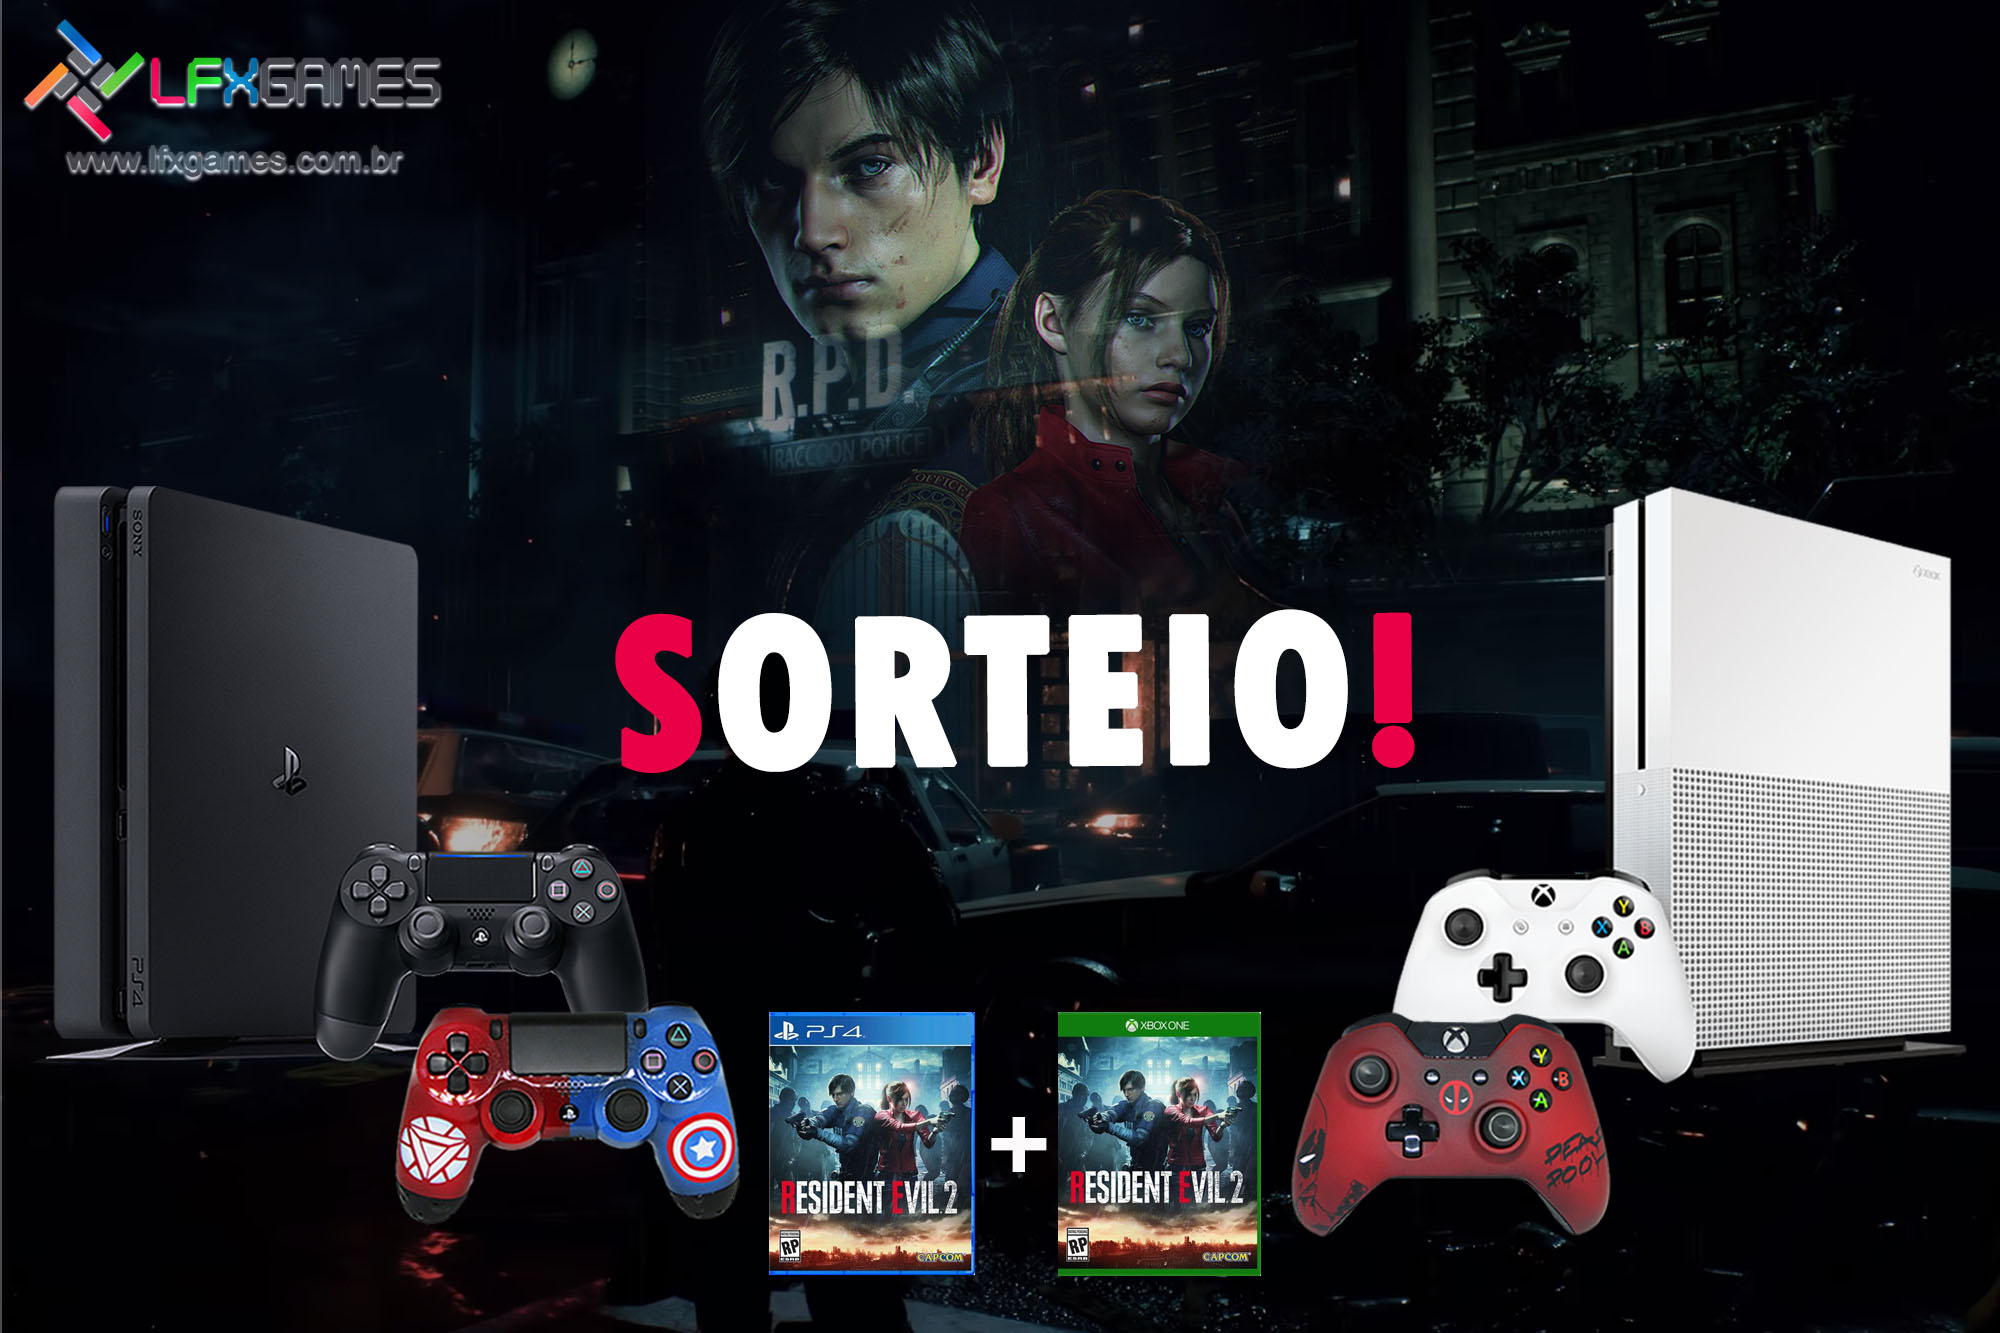 Sorteio PlayStation 4 + Xbox One S + Resident Evil 2 Remake